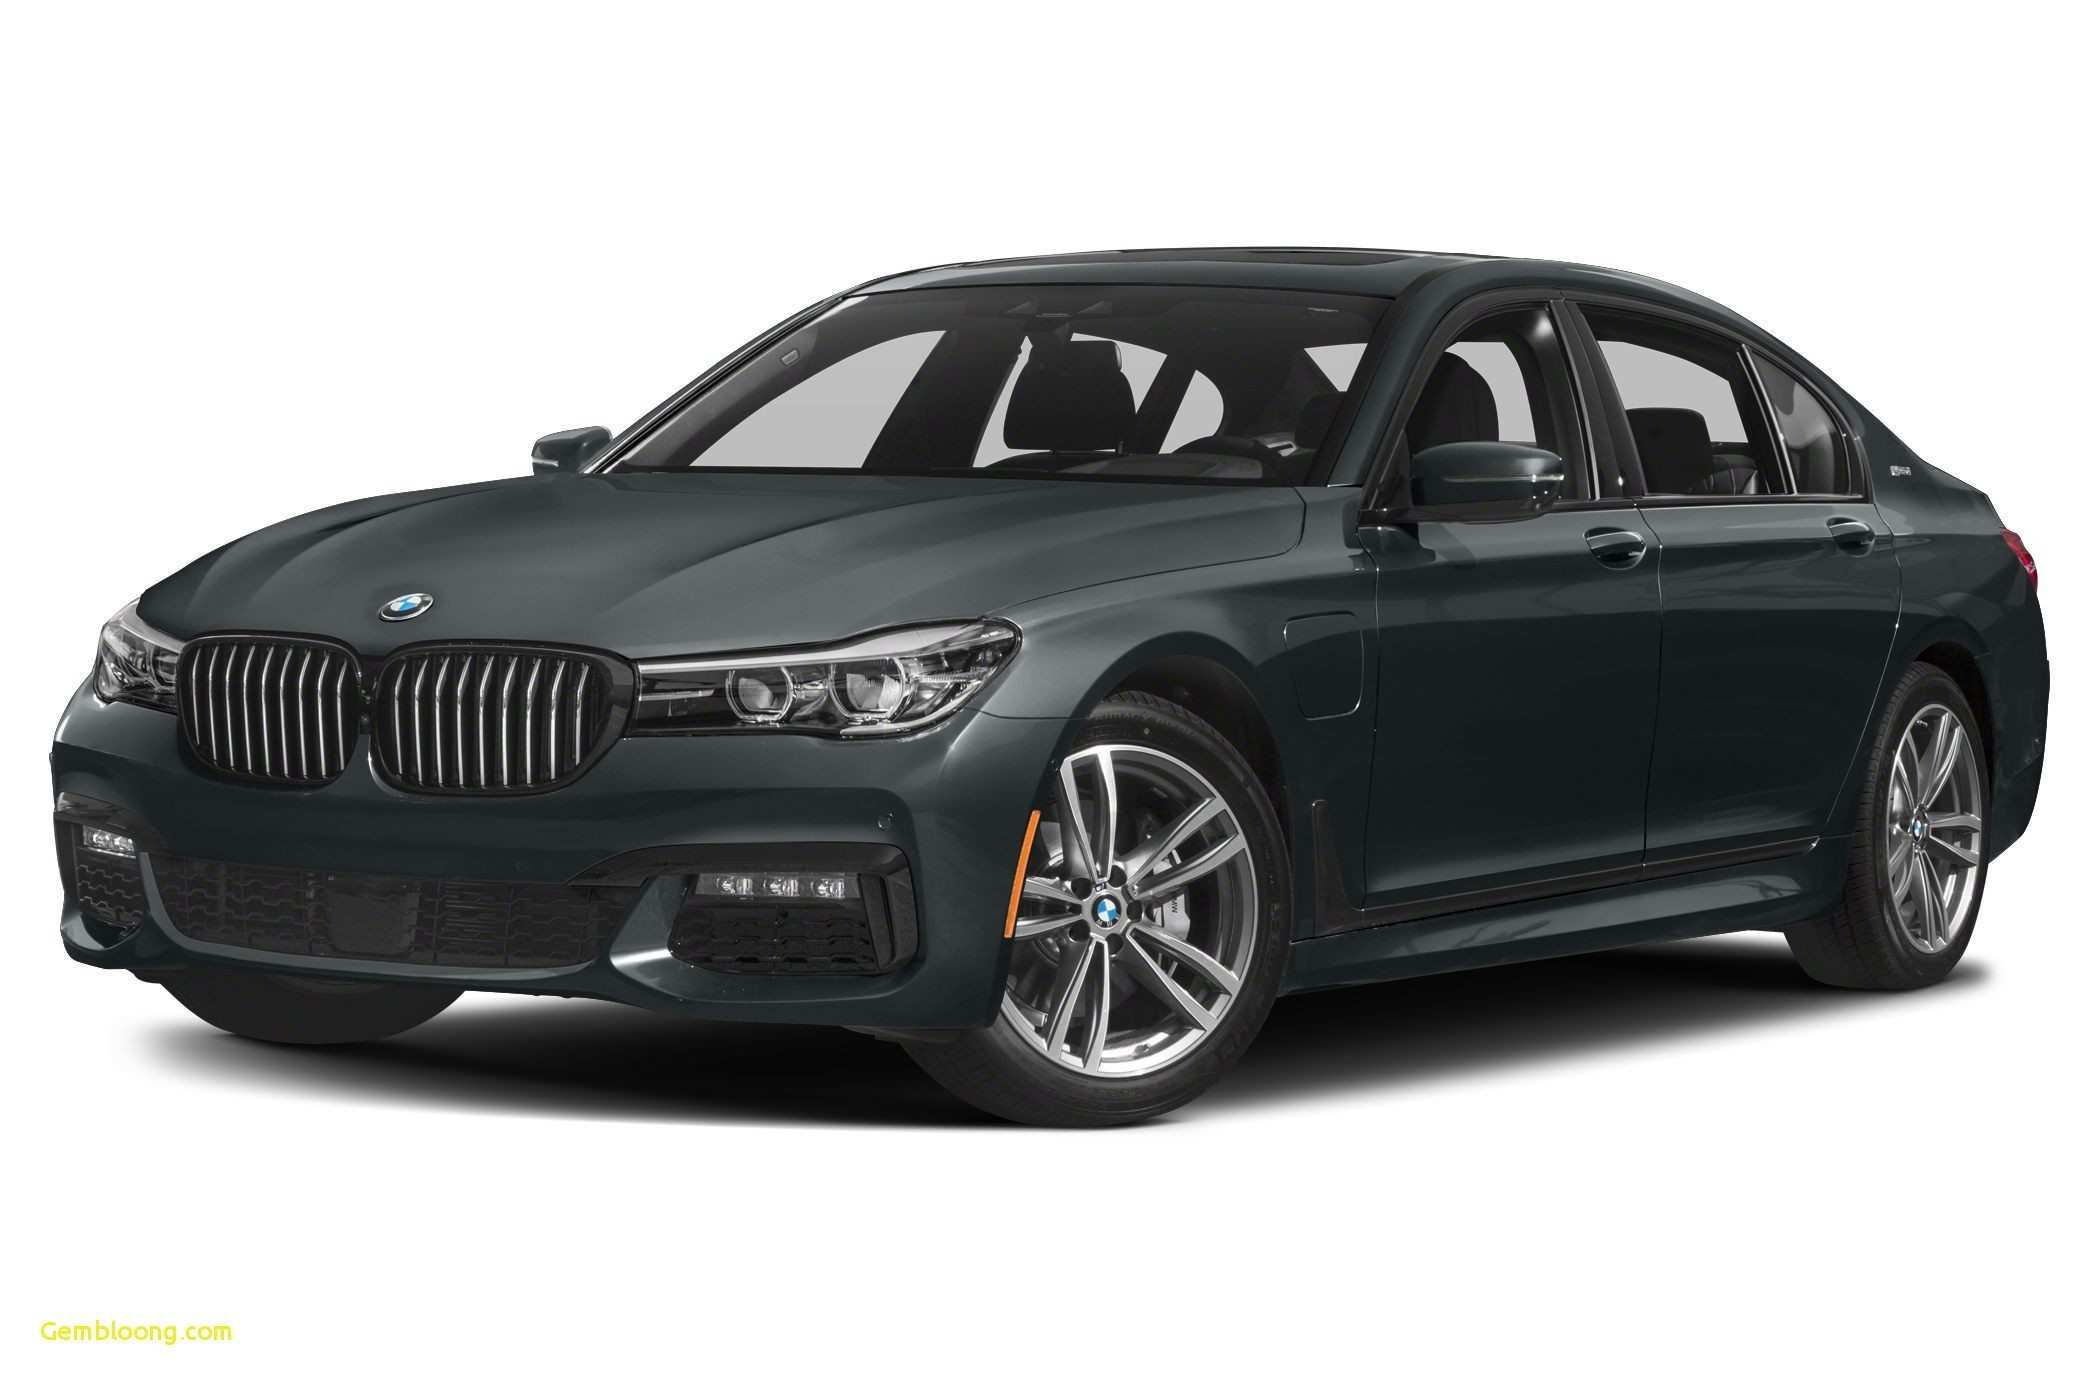 40 New 2020 BMW 7 Series Perfection New Exterior